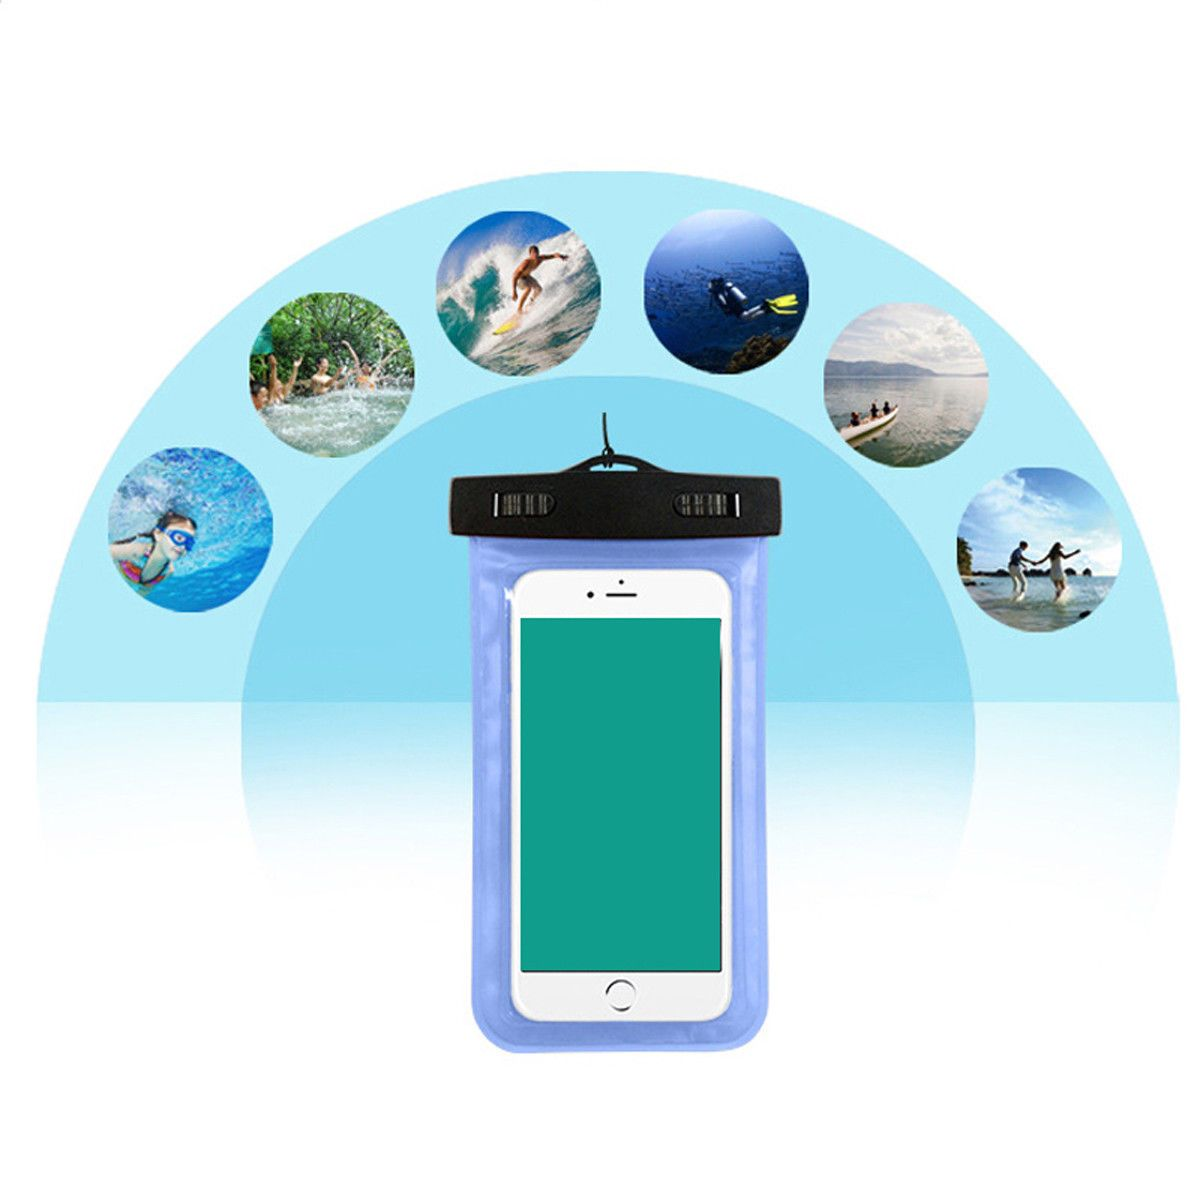 sale retailer cb5ad b0032 $1.68 - Waterproof Phone Case Pvc Anti-Water Pouch Dry Bag Cover For ...